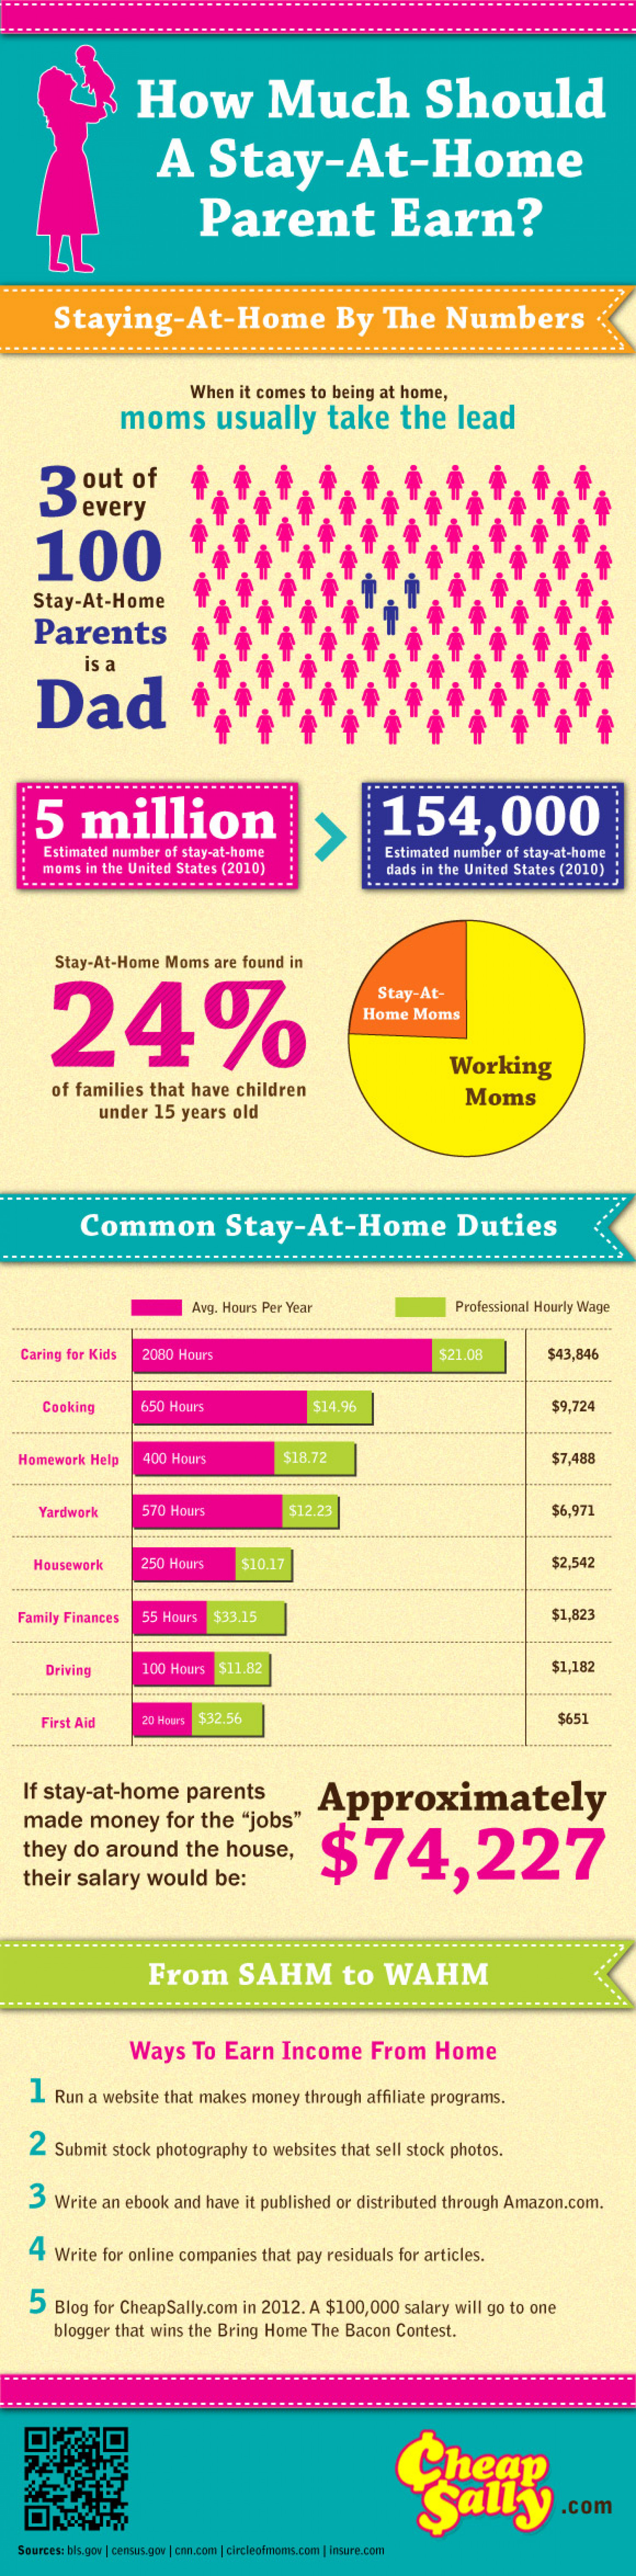 How Much a Stay at Home Parent Should Earn  Infographic